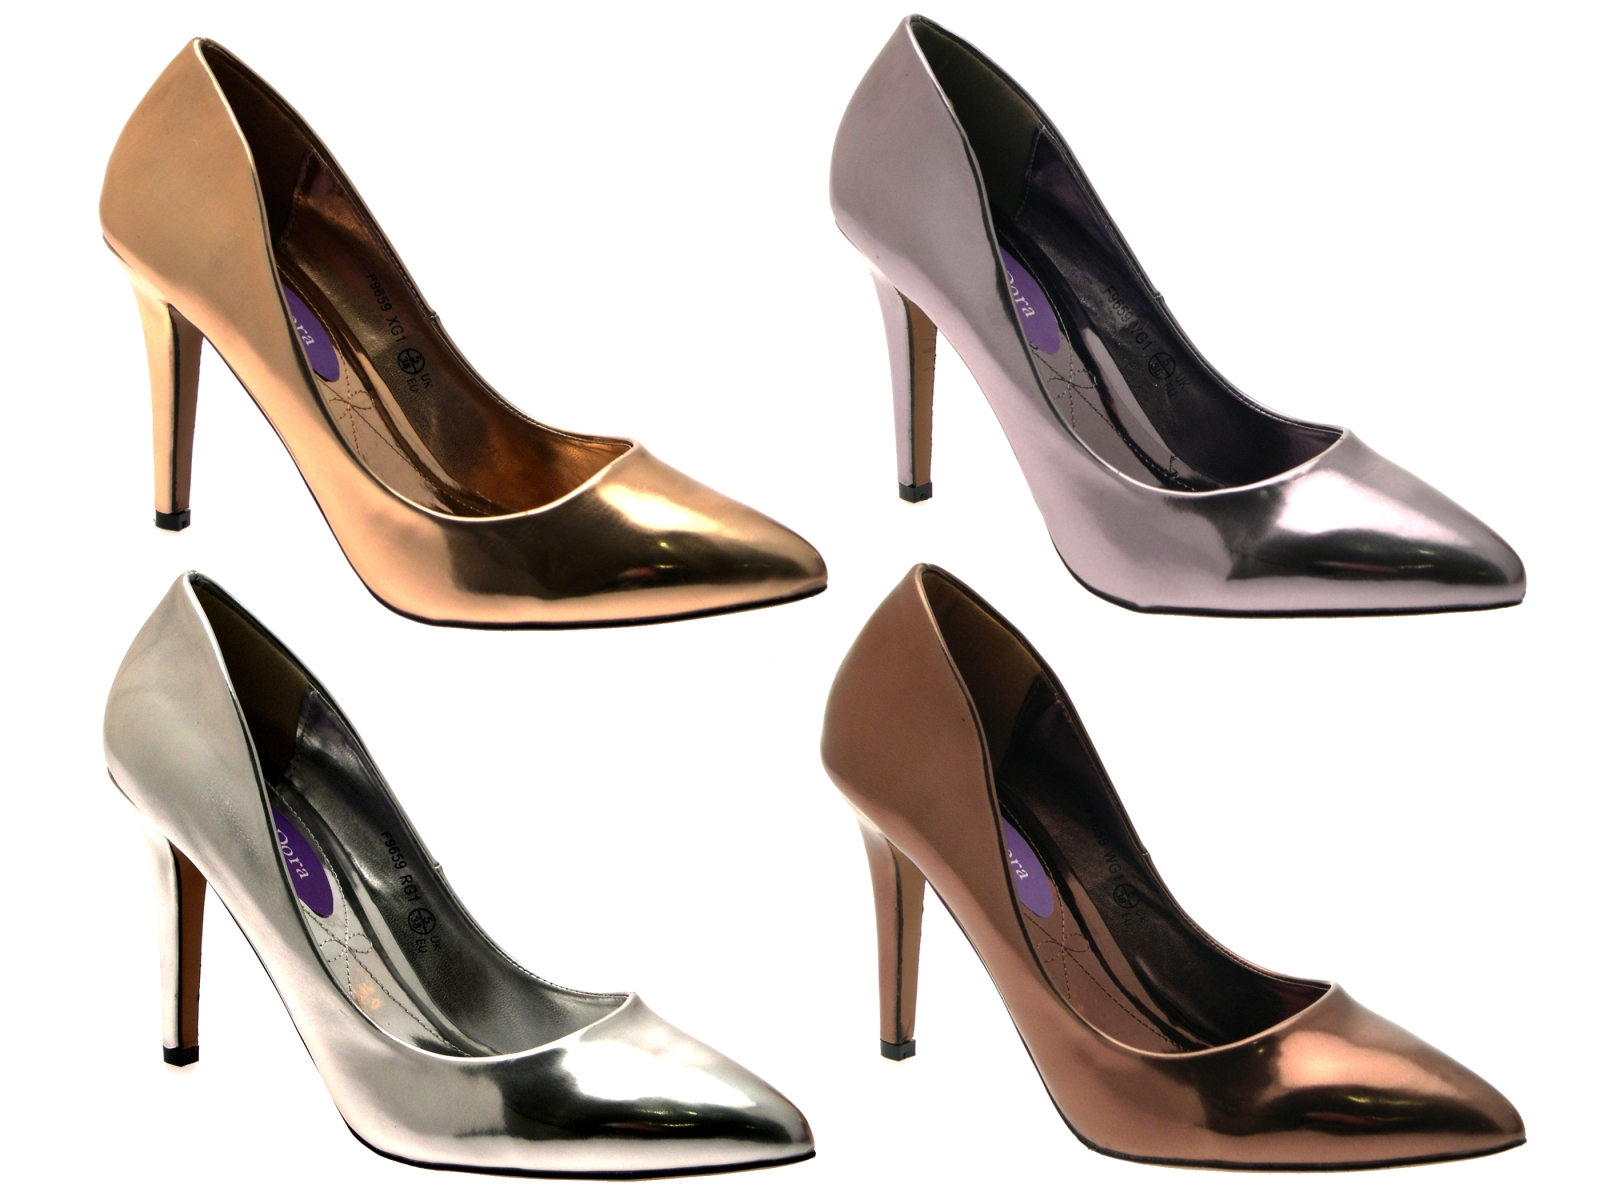 womens metallic pointed toe court stiletto high heels ladies shoes uk size 3 8 ebay. Black Bedroom Furniture Sets. Home Design Ideas